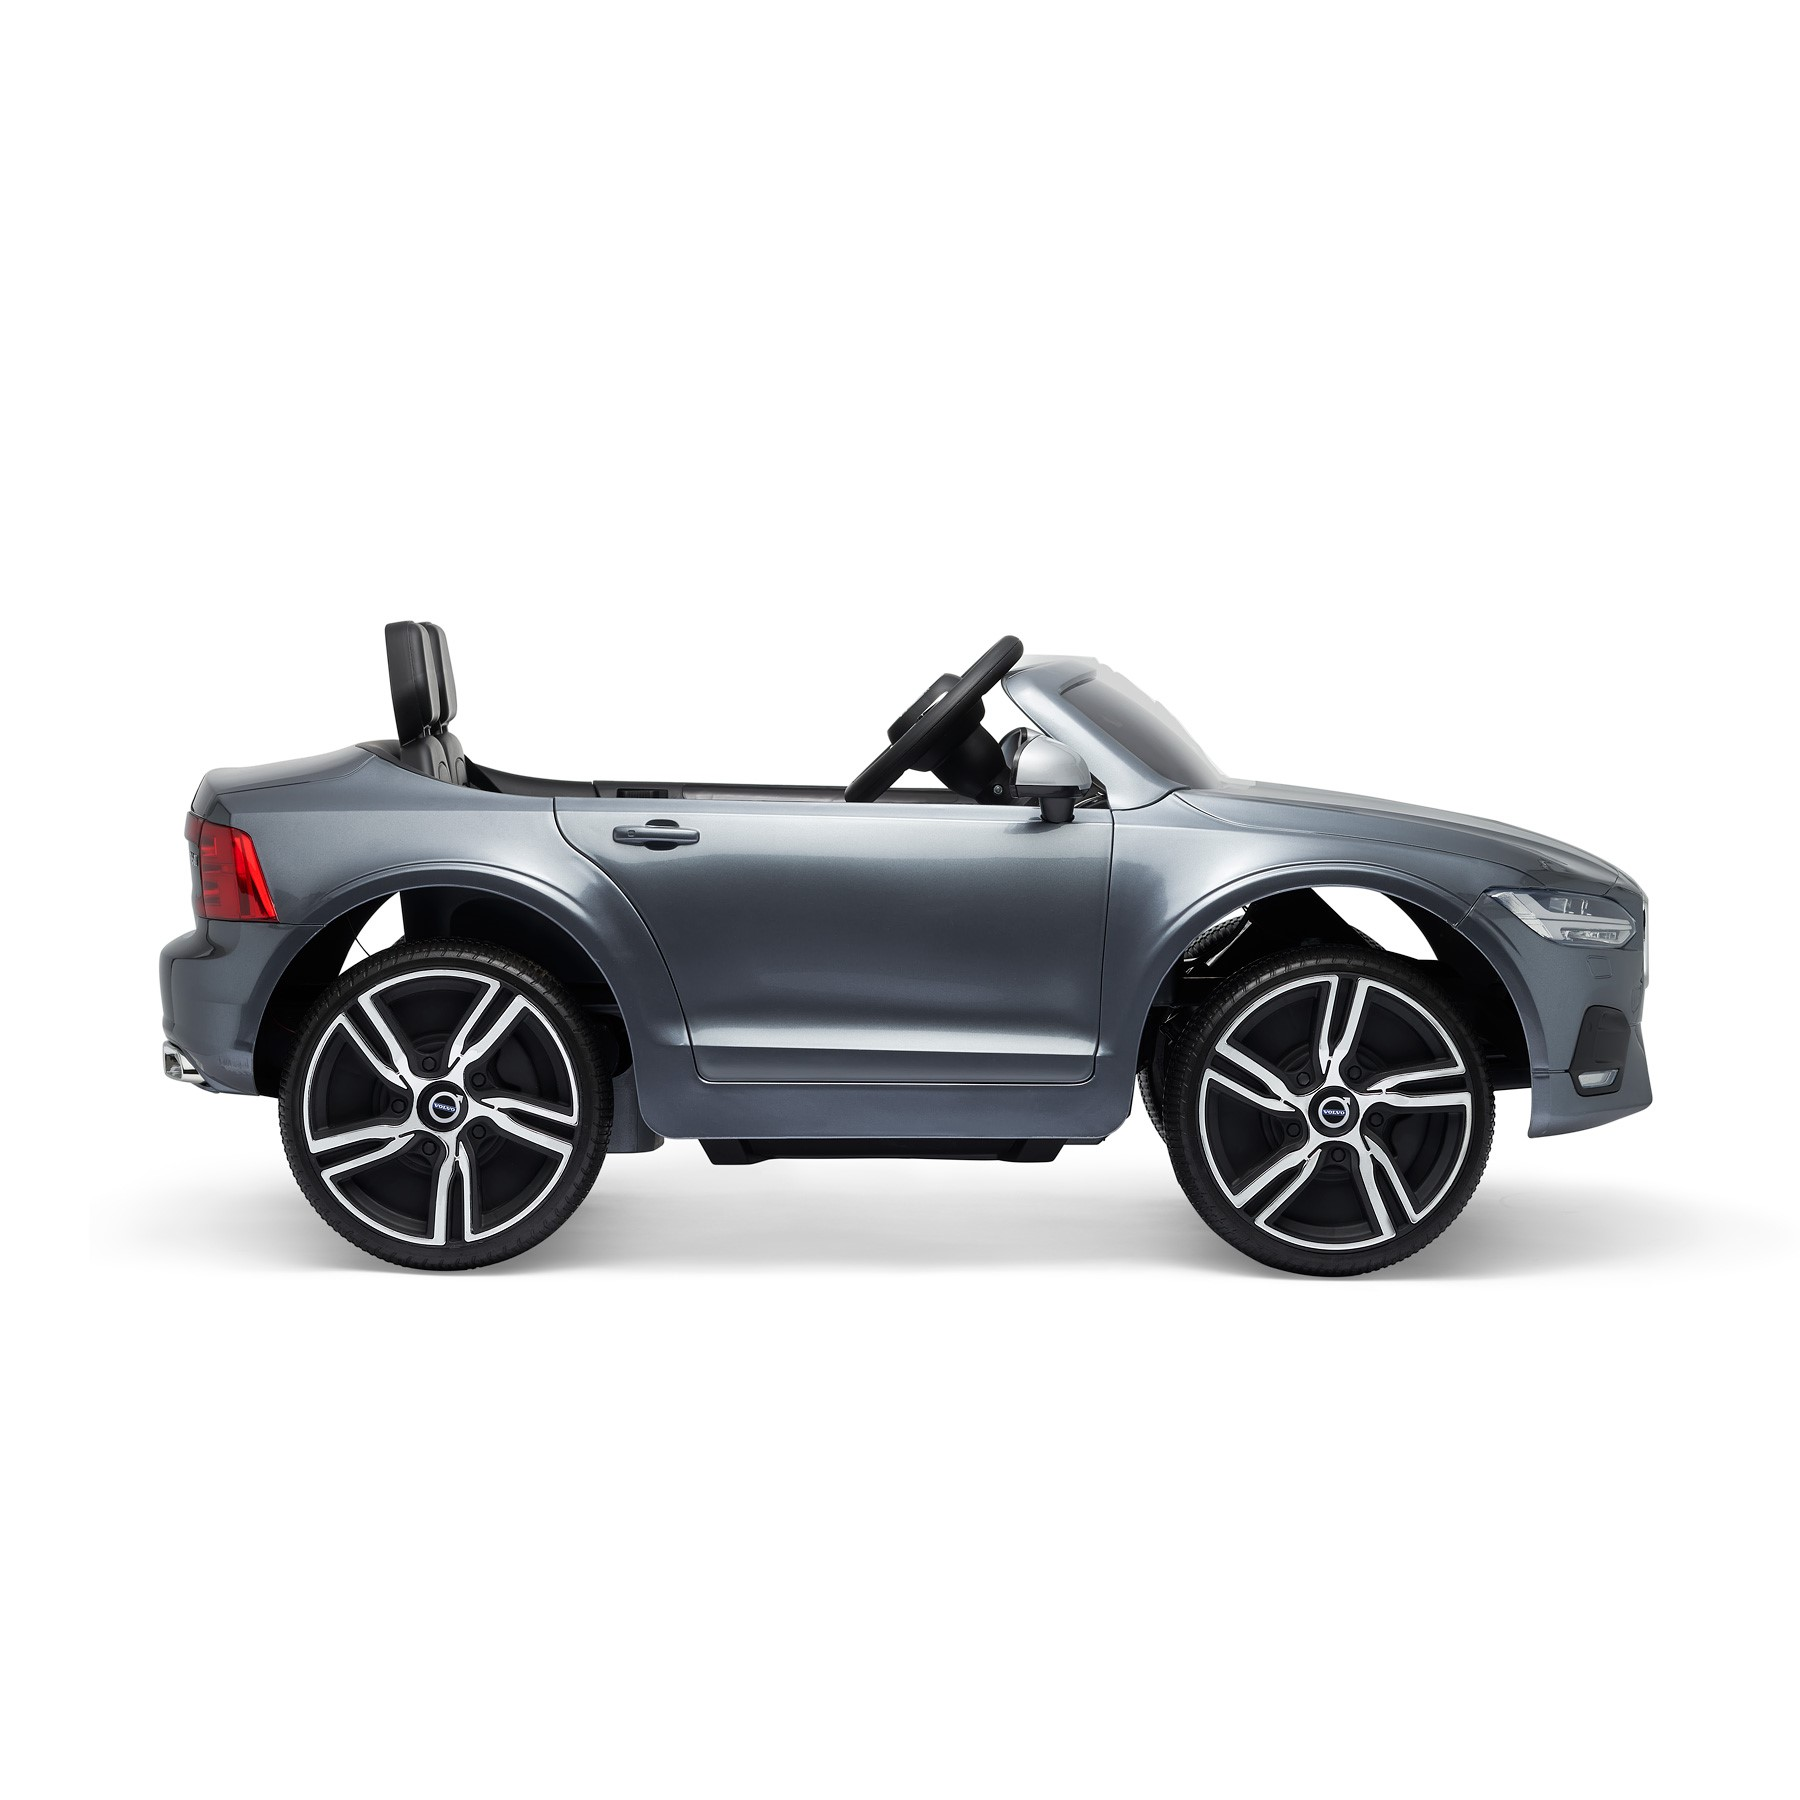 Volvo Car Lifestyle Collection Shop. Kids S90 Electric